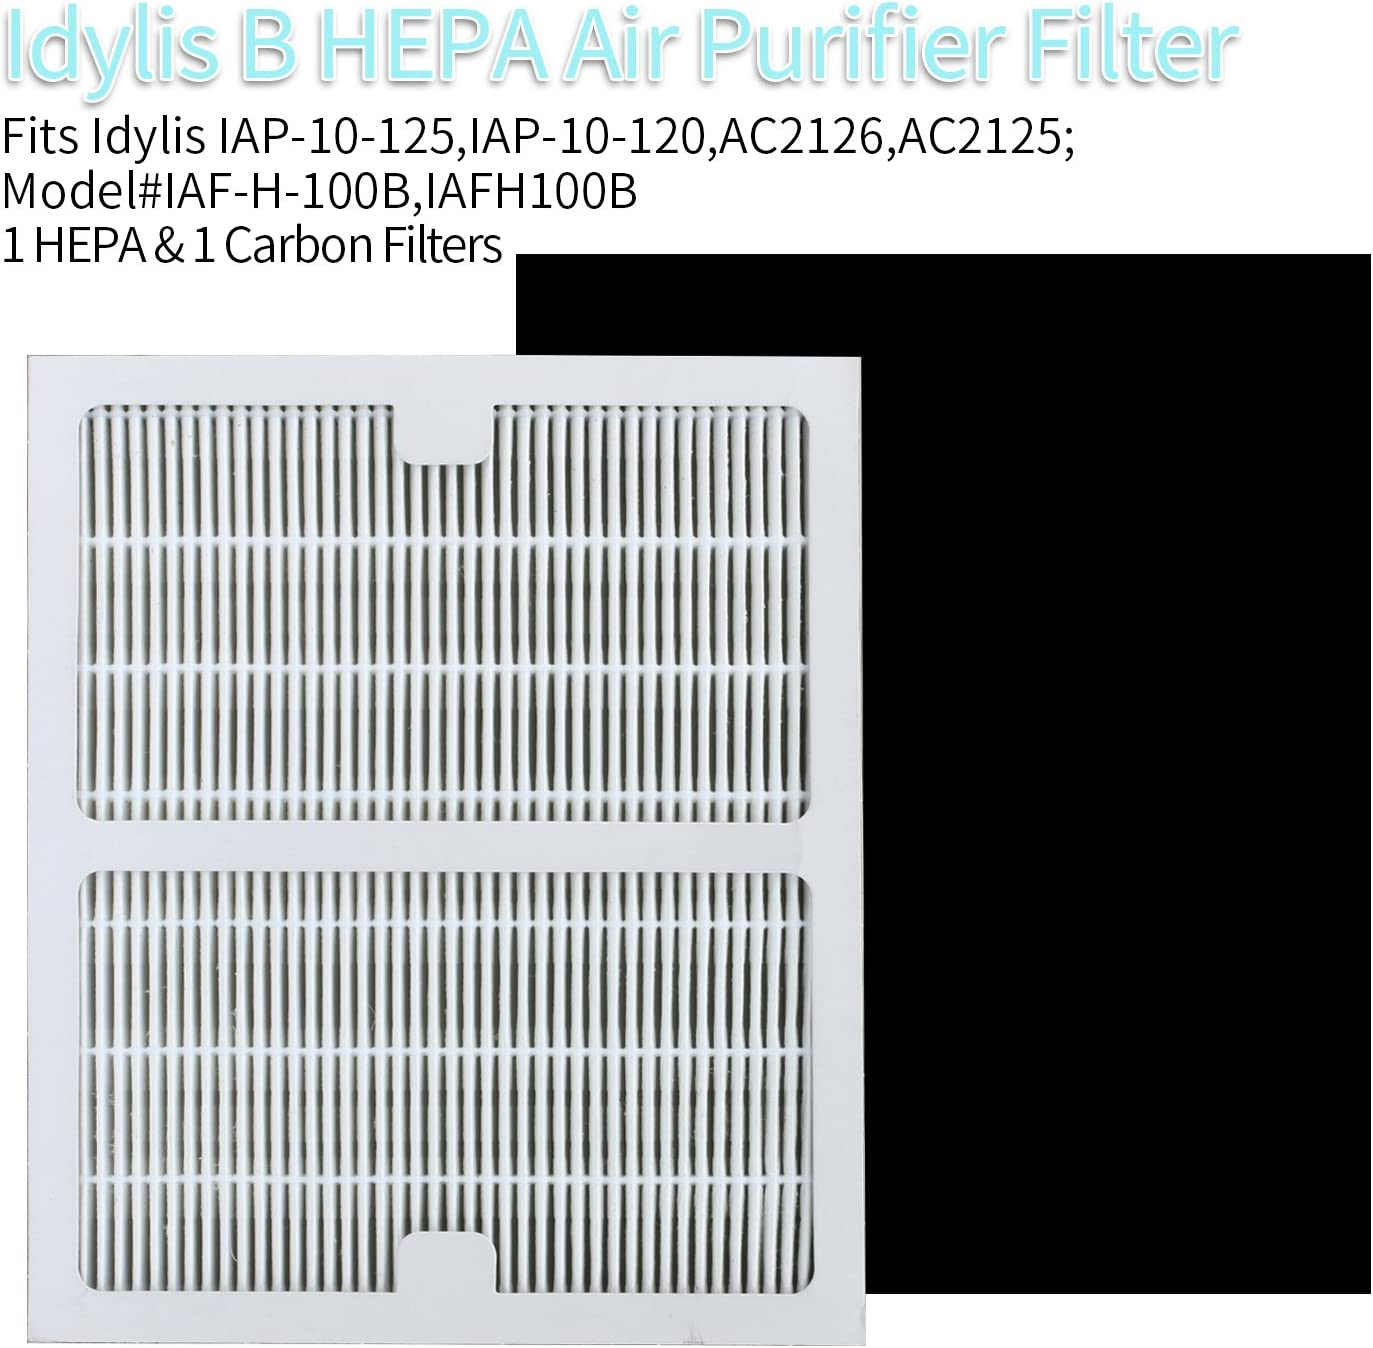 2 Idylis Replacement B Hepa Air Purifier Filters BRAND NEW SEALED AC-2125